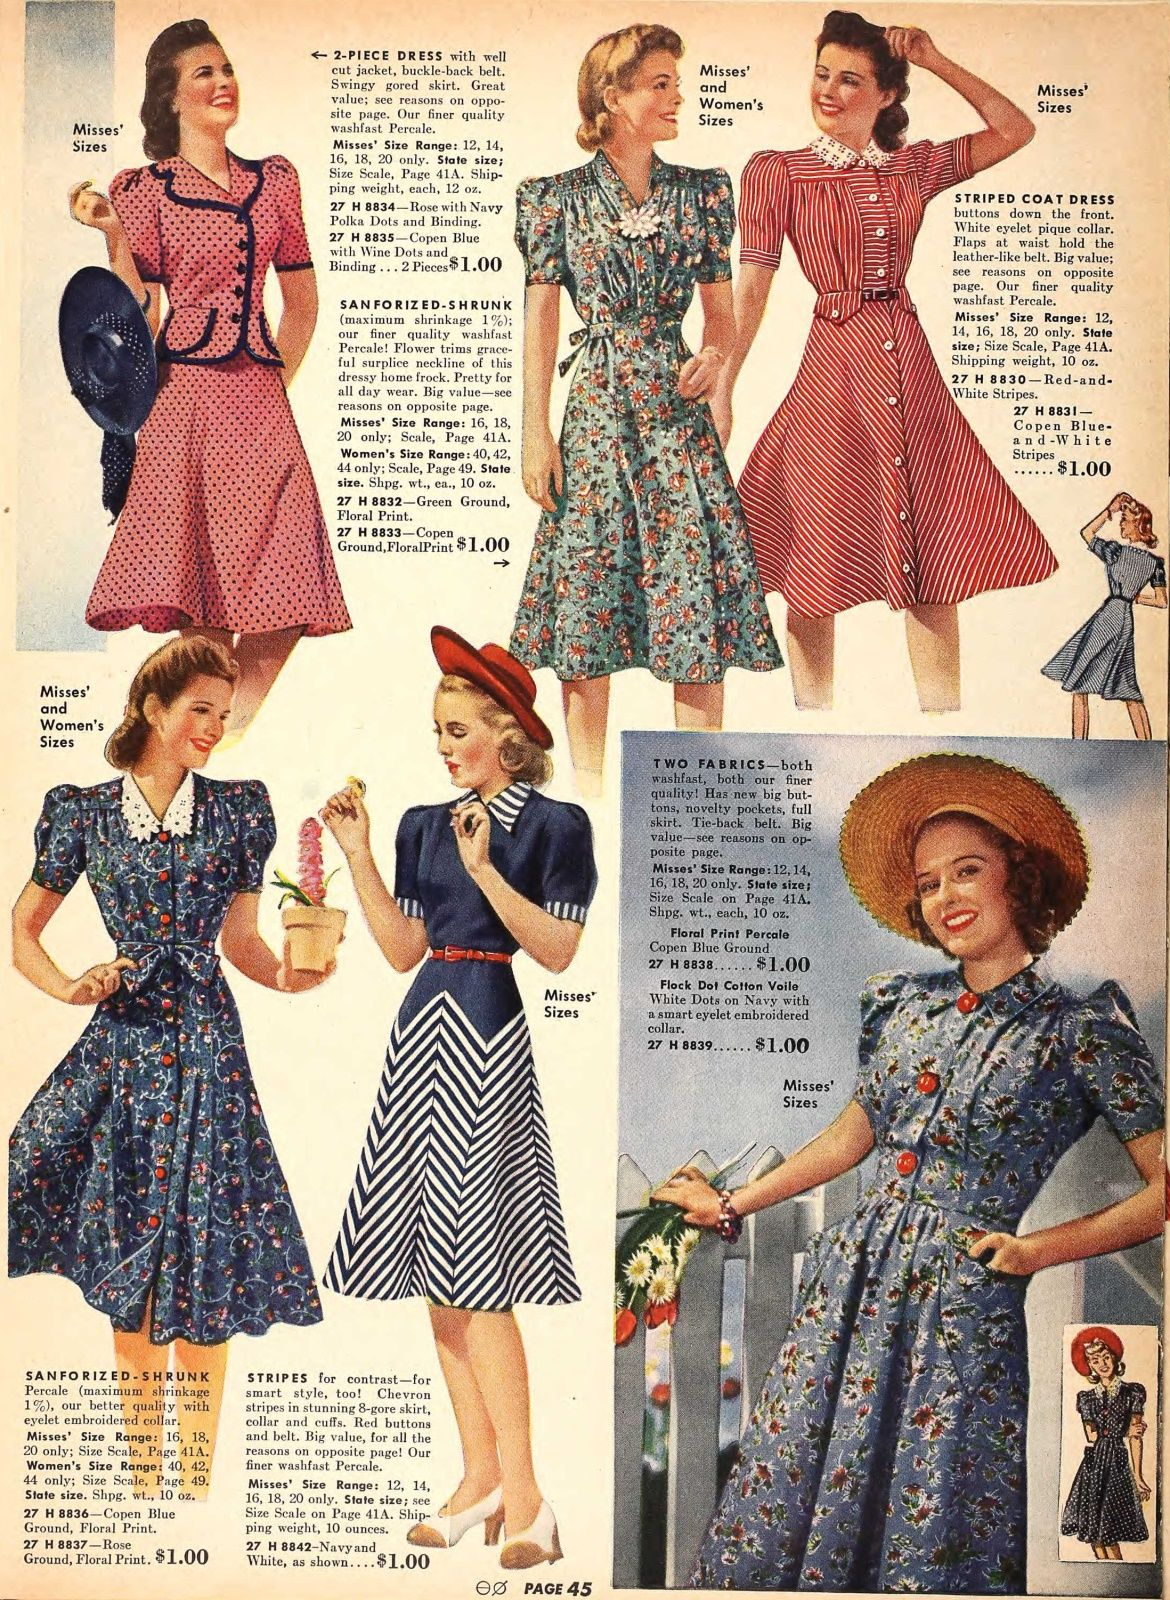 Vintage clothes fashion ads of the 1940s page 22 - Fashion History